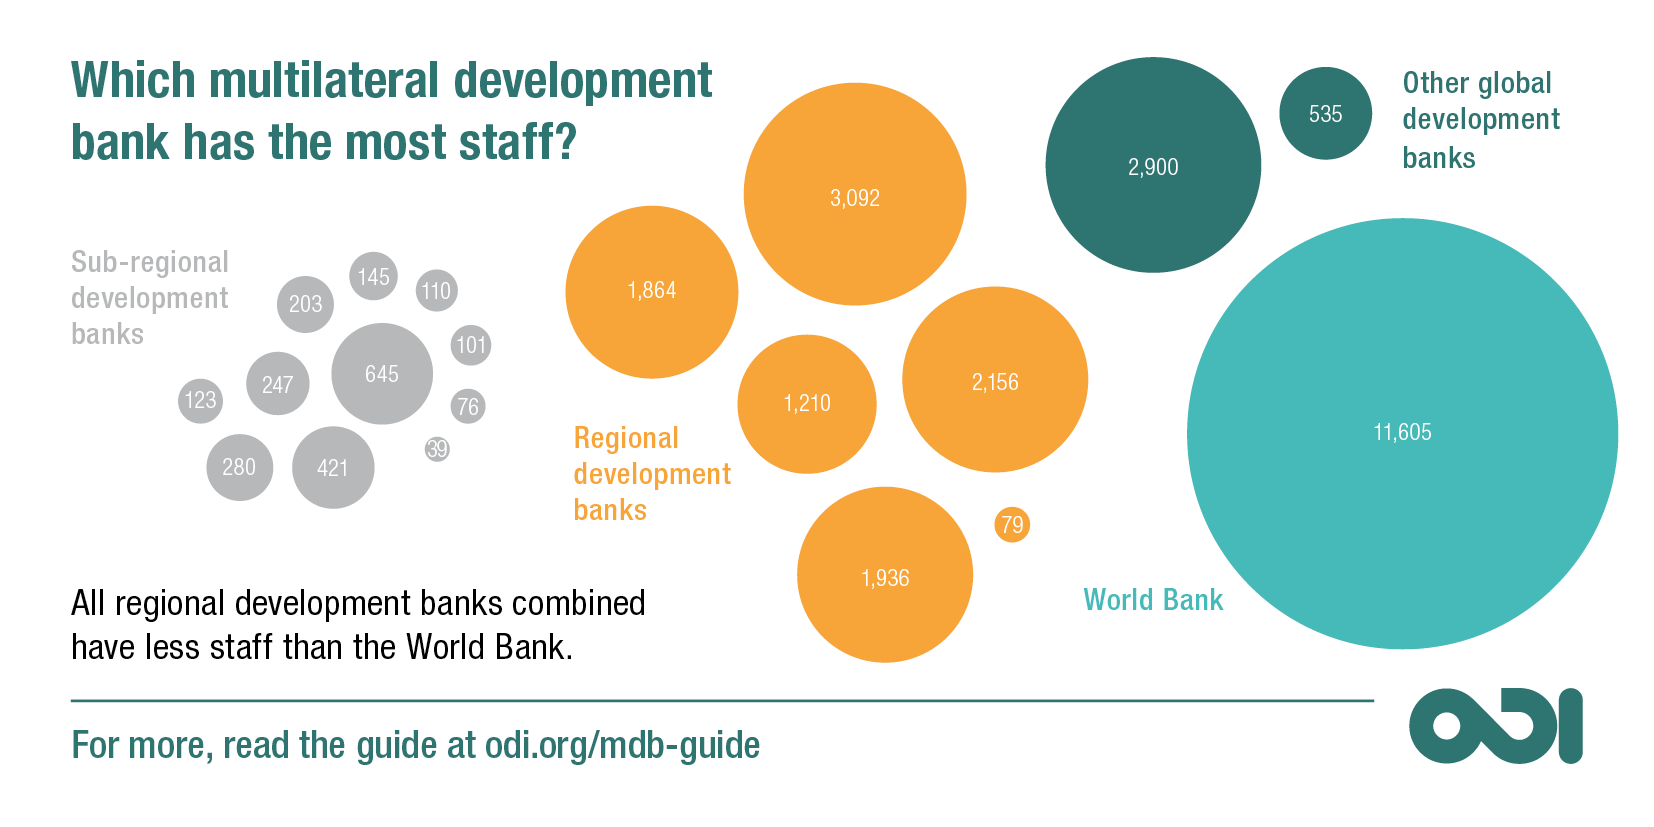 Which multilateral development bank has the most staff?